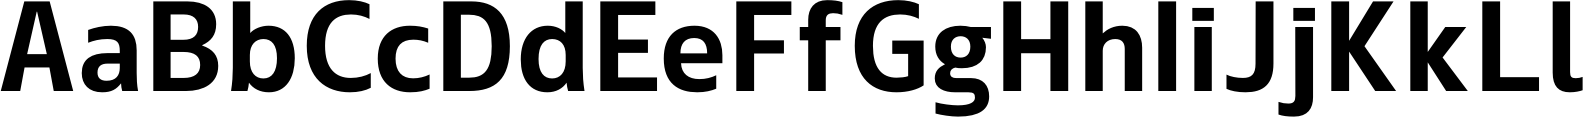 Ramston Regular Font